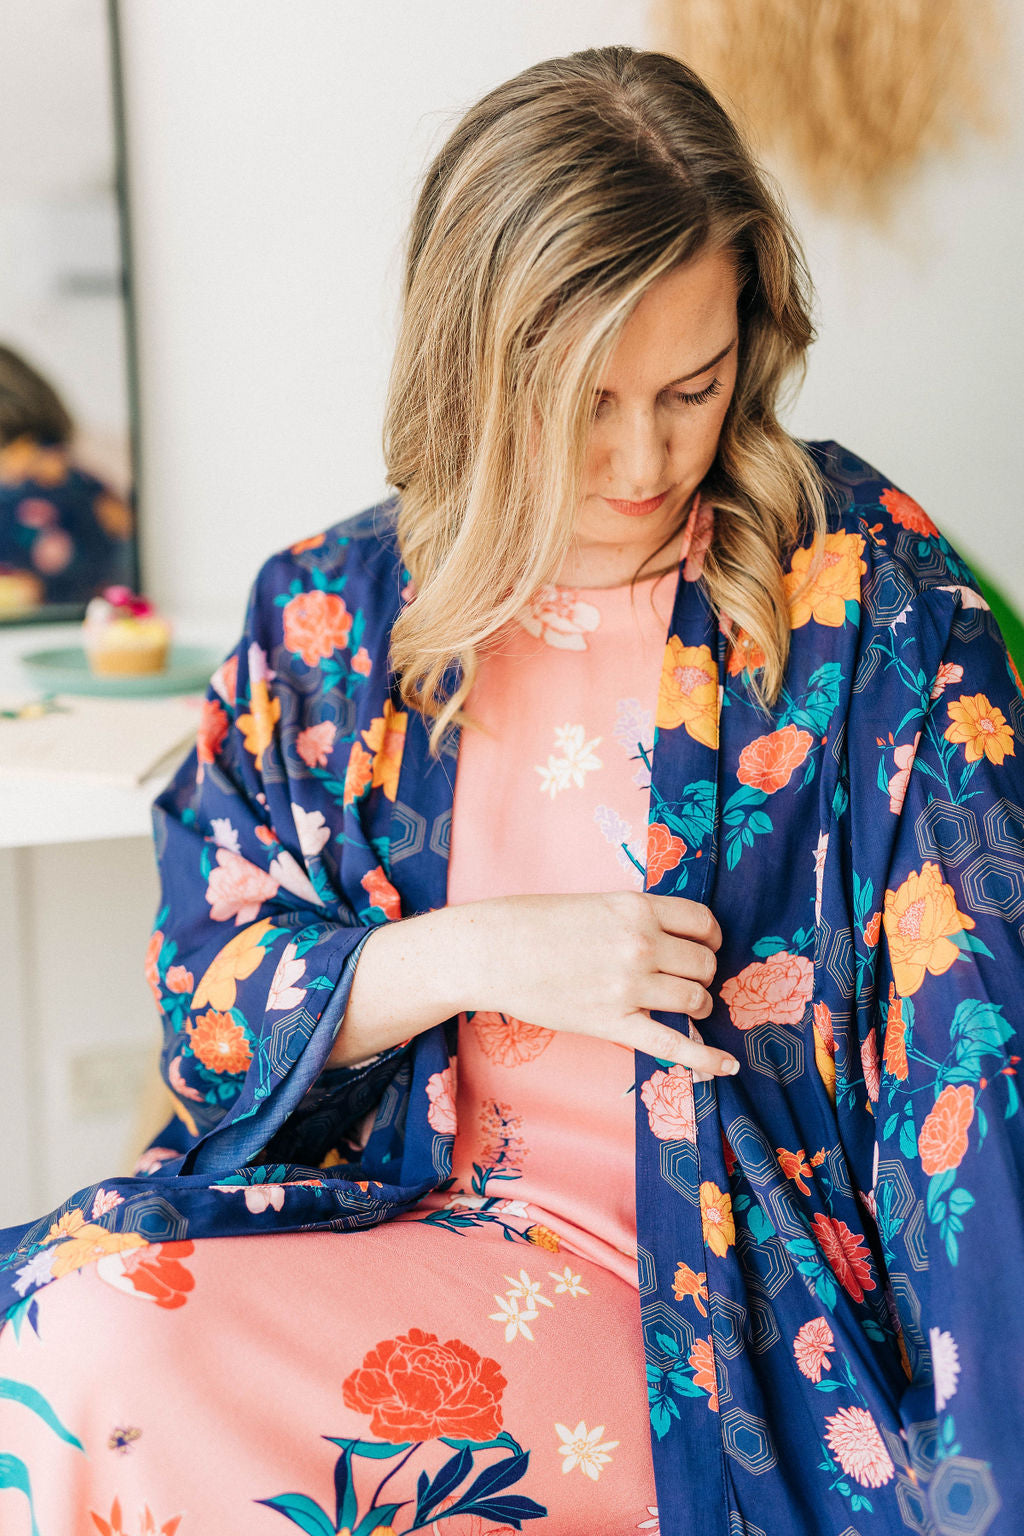 woman looking at the sleeve of her limonata navy floral print chimono robe